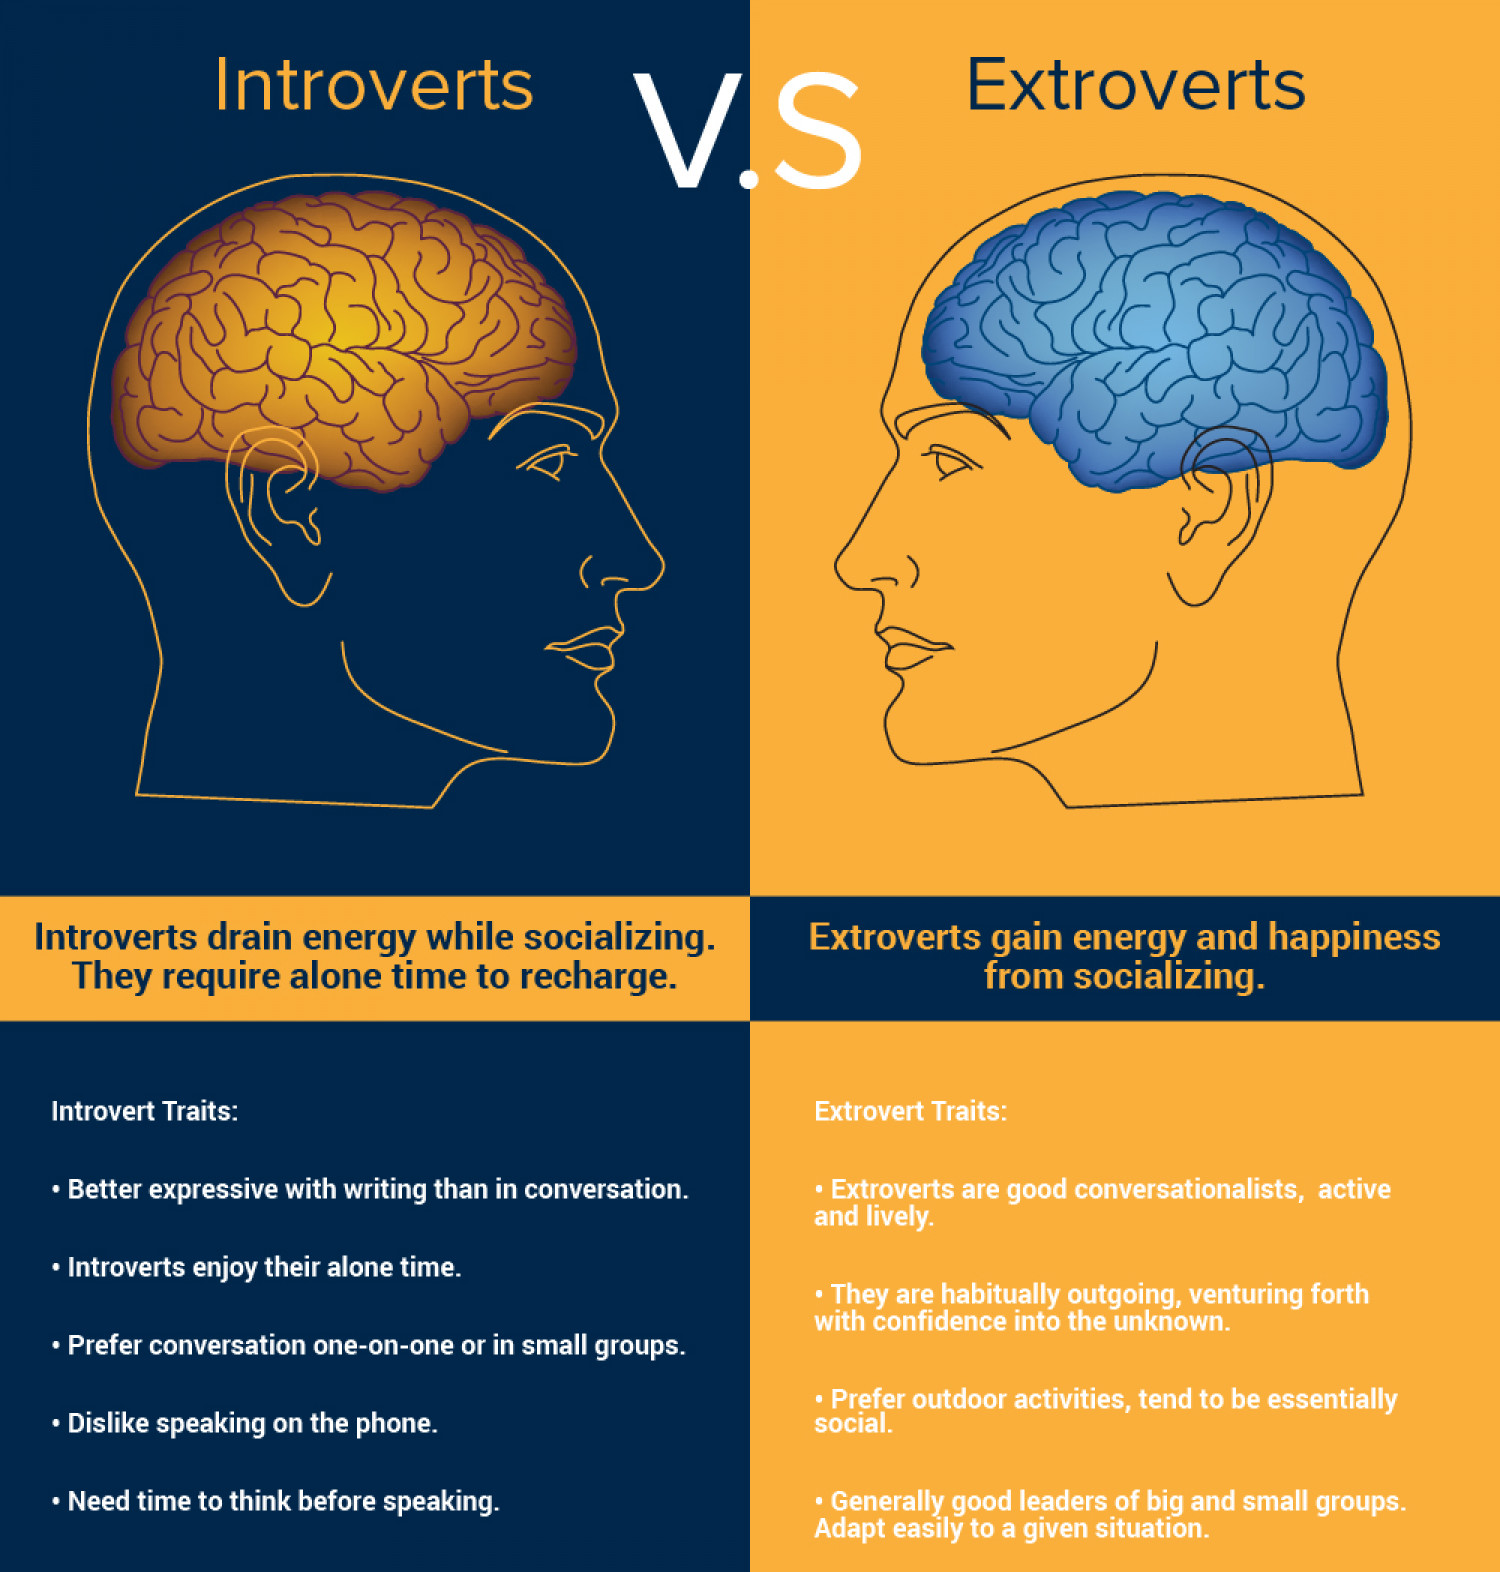 INTROVERTS VS EXTROVERTS Visually